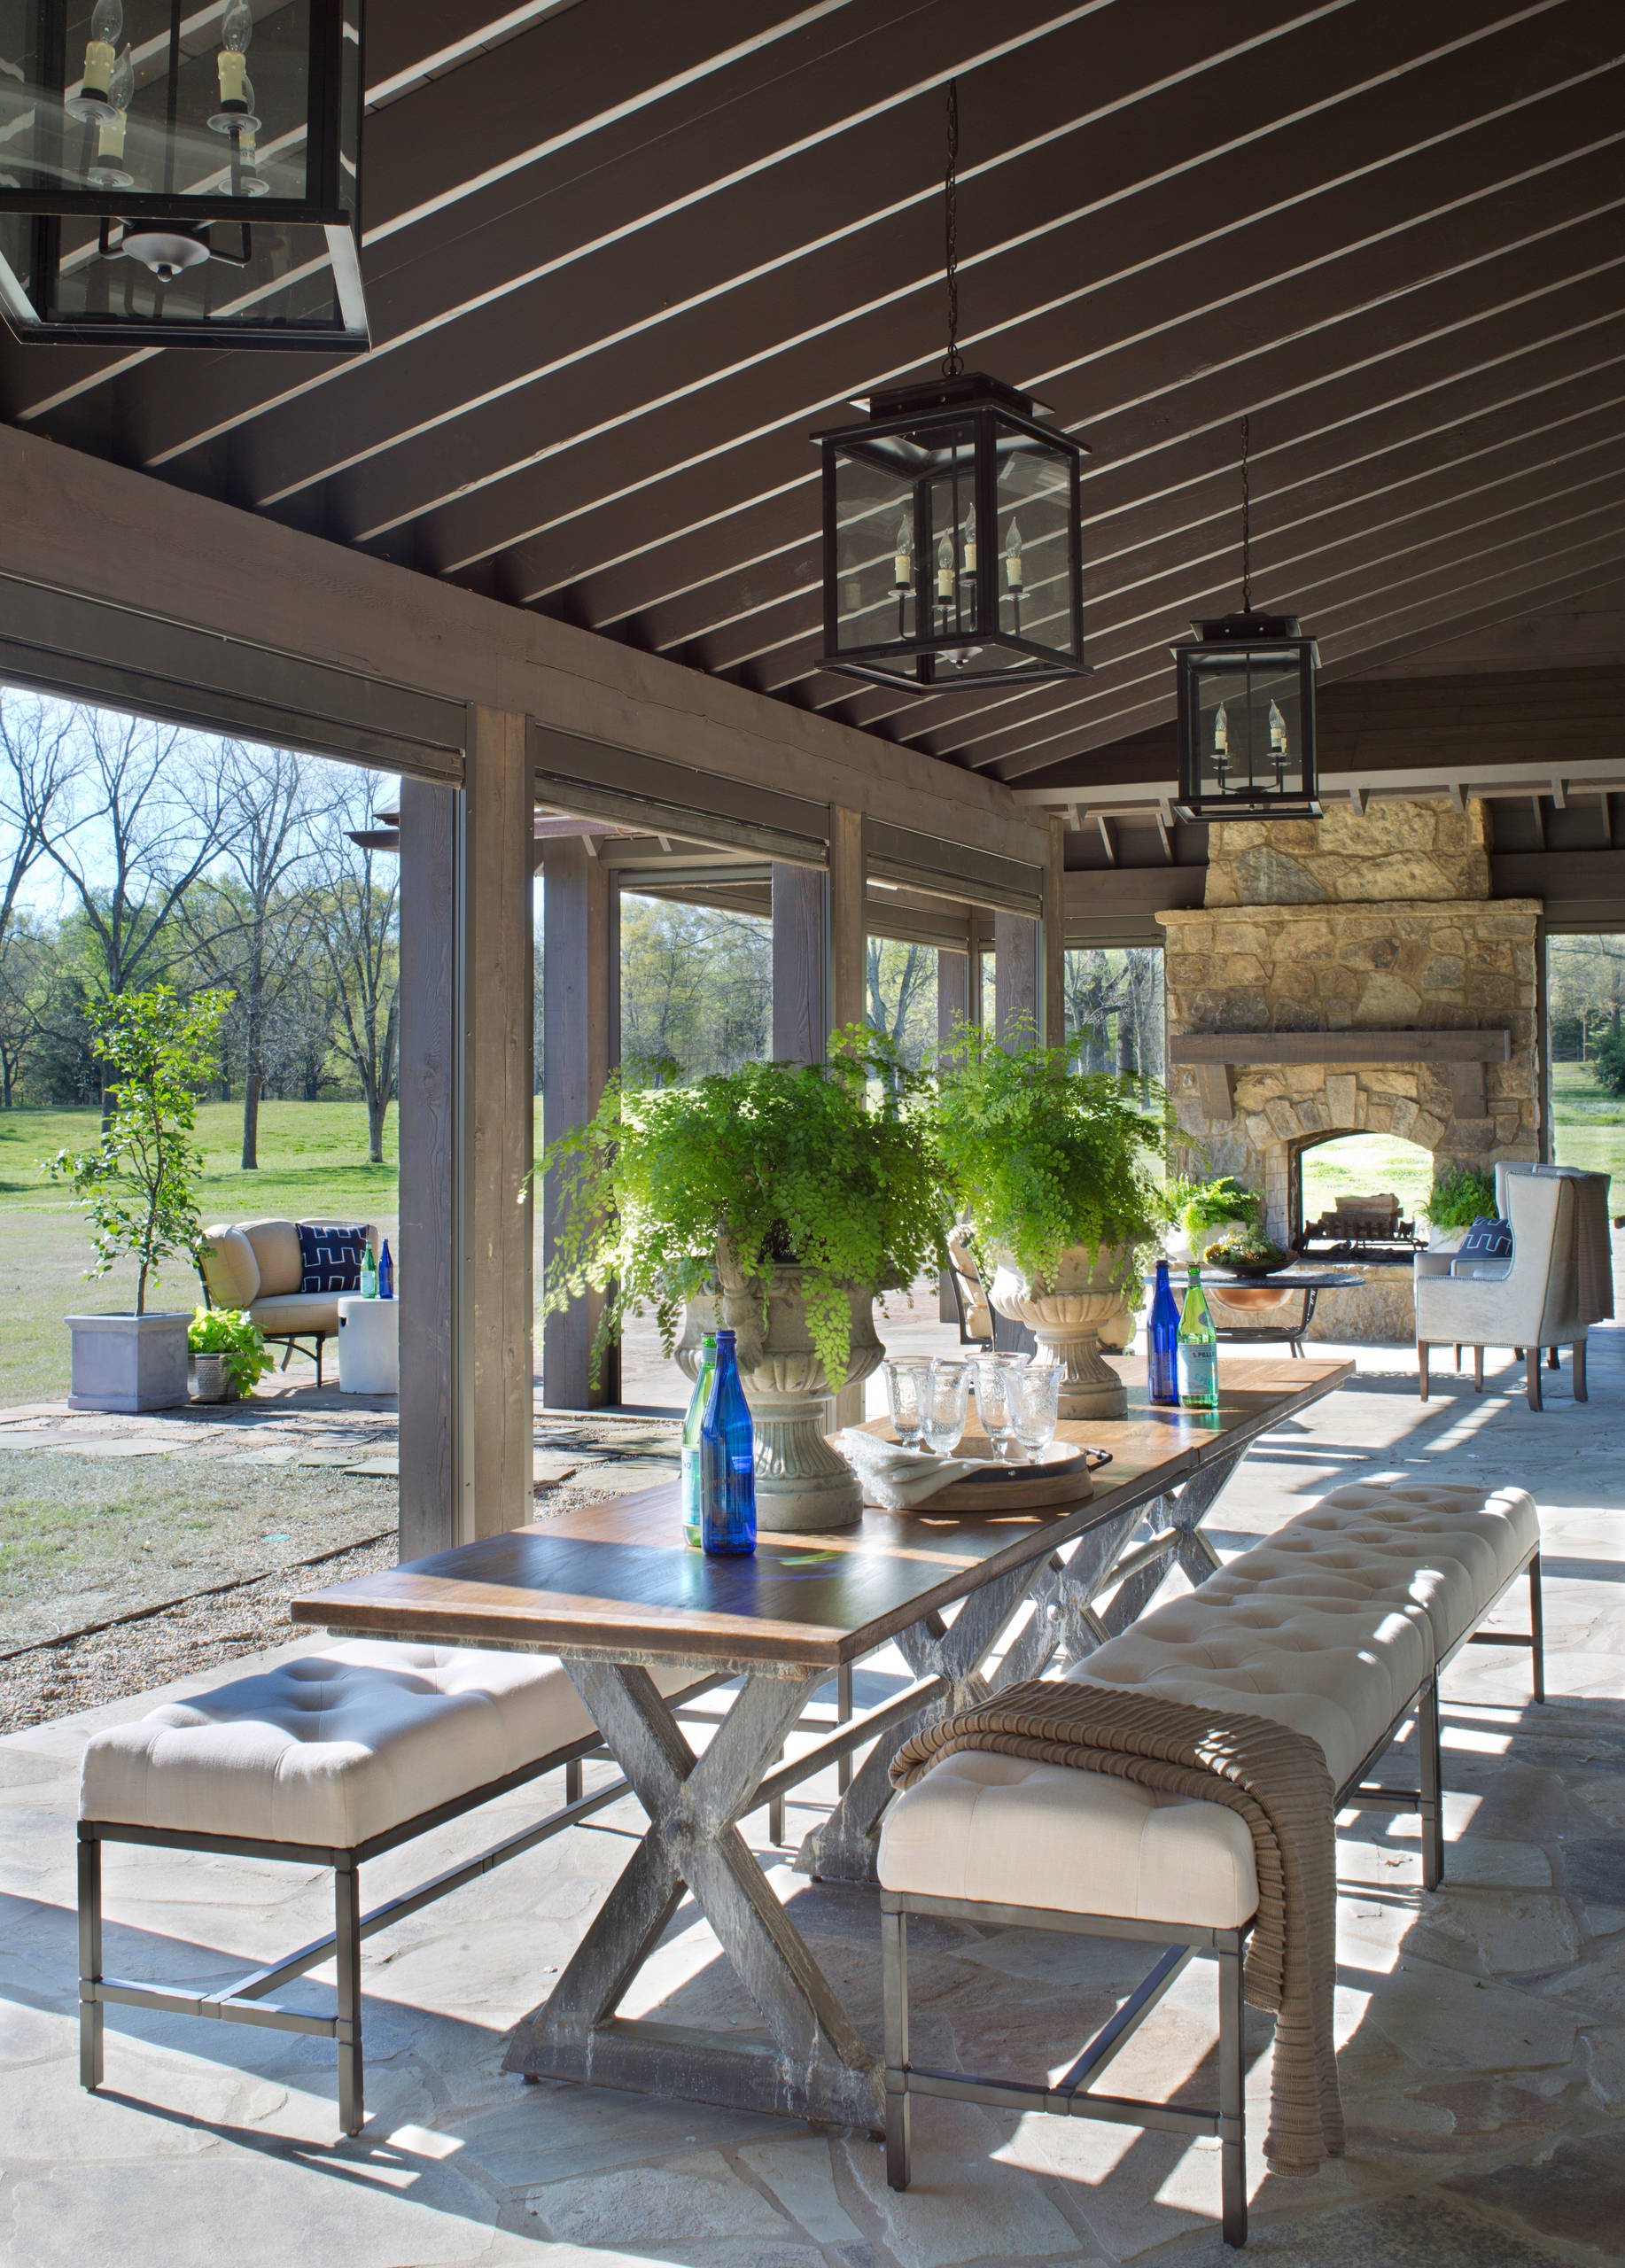 75 Beautiful Farmhouse Outdoor Design With A Fire Pit Pictures Ideas October 2020 Houzz